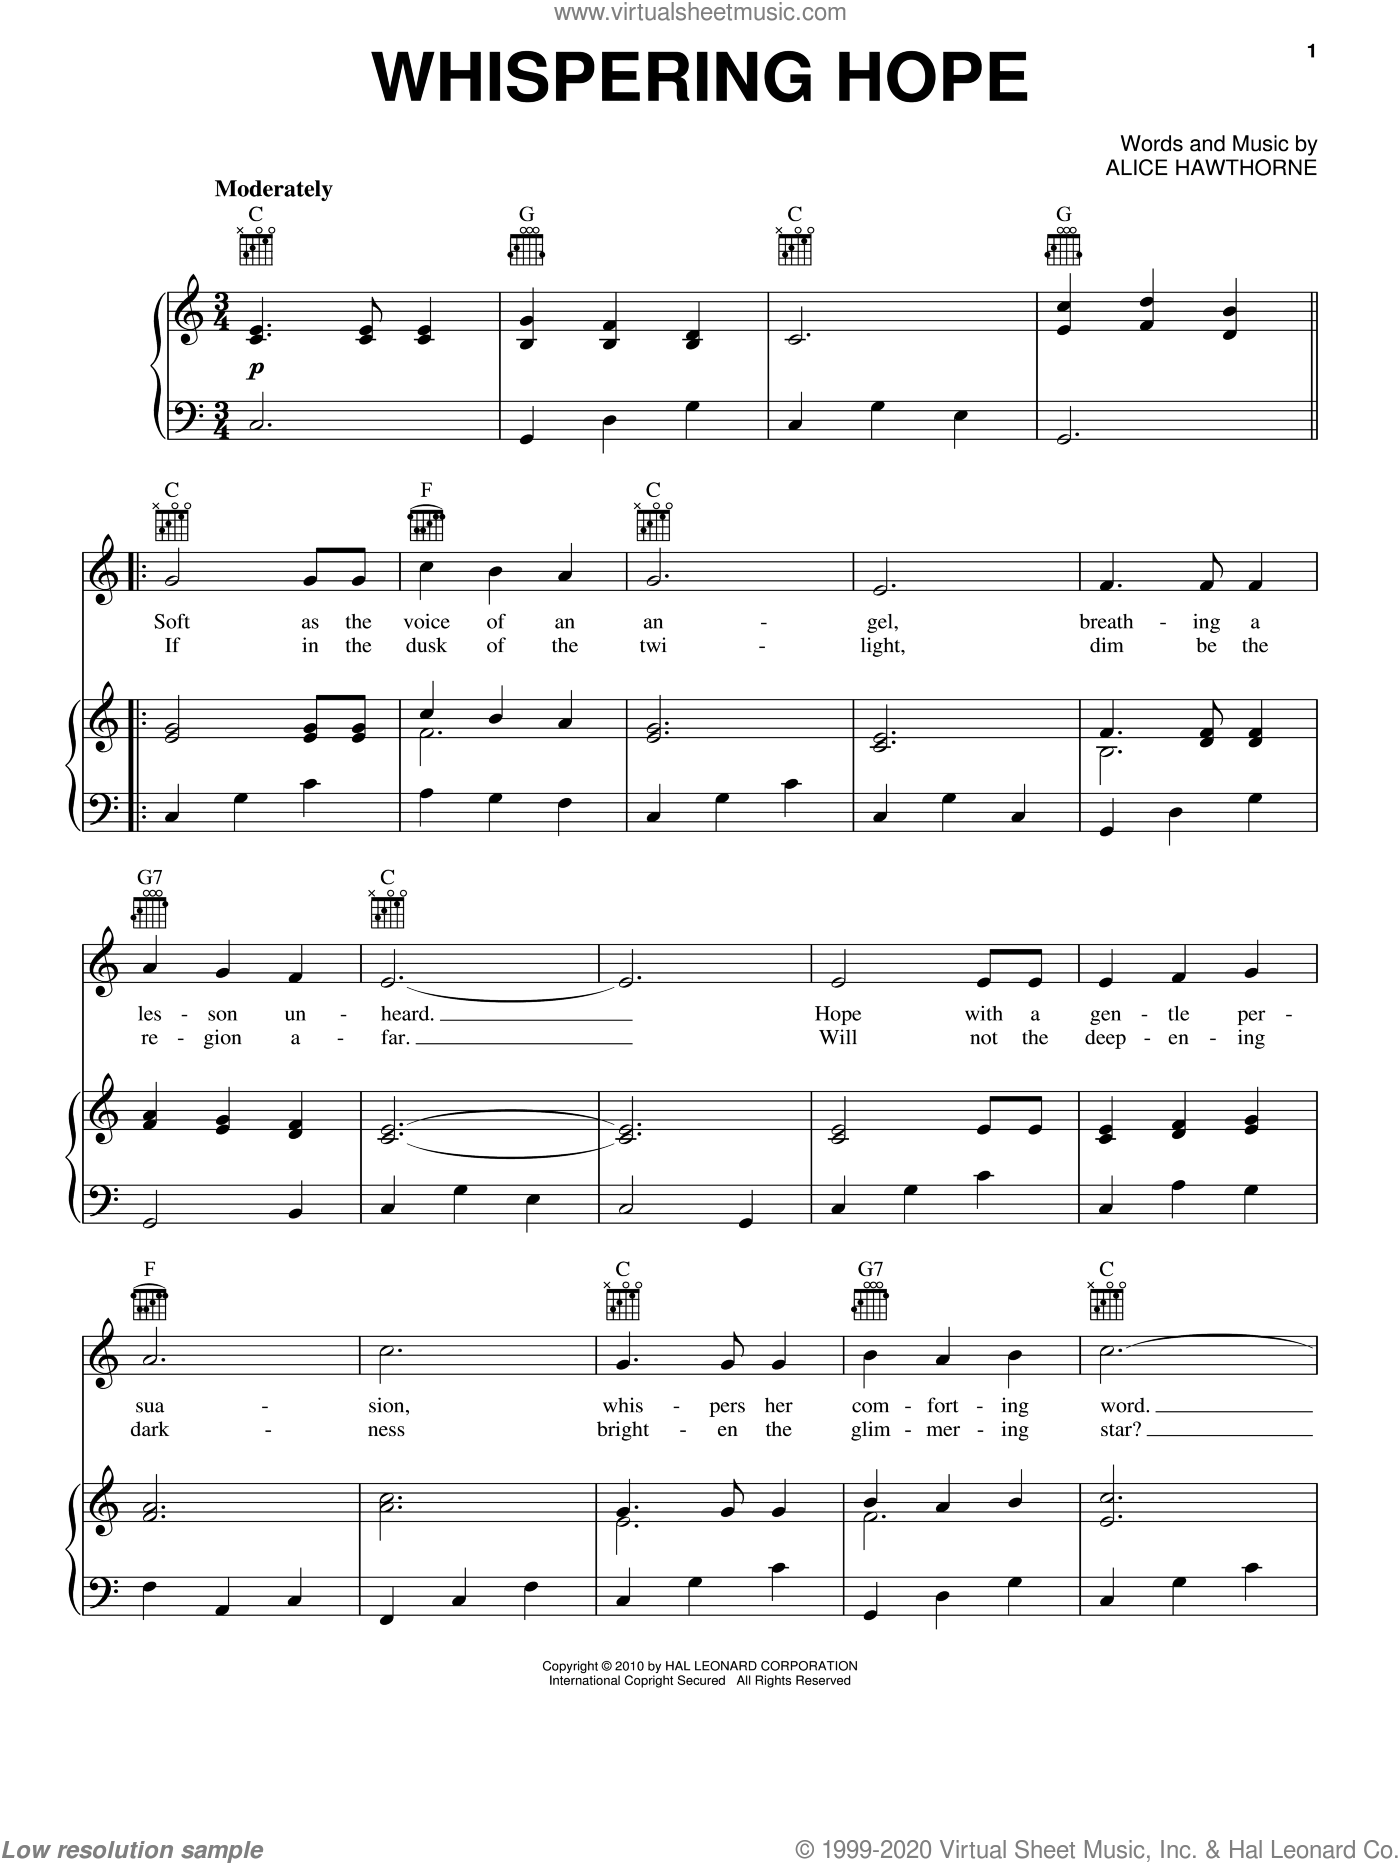 Whispering Hope sheet music for voice, piano or guitar by Septimus Winner